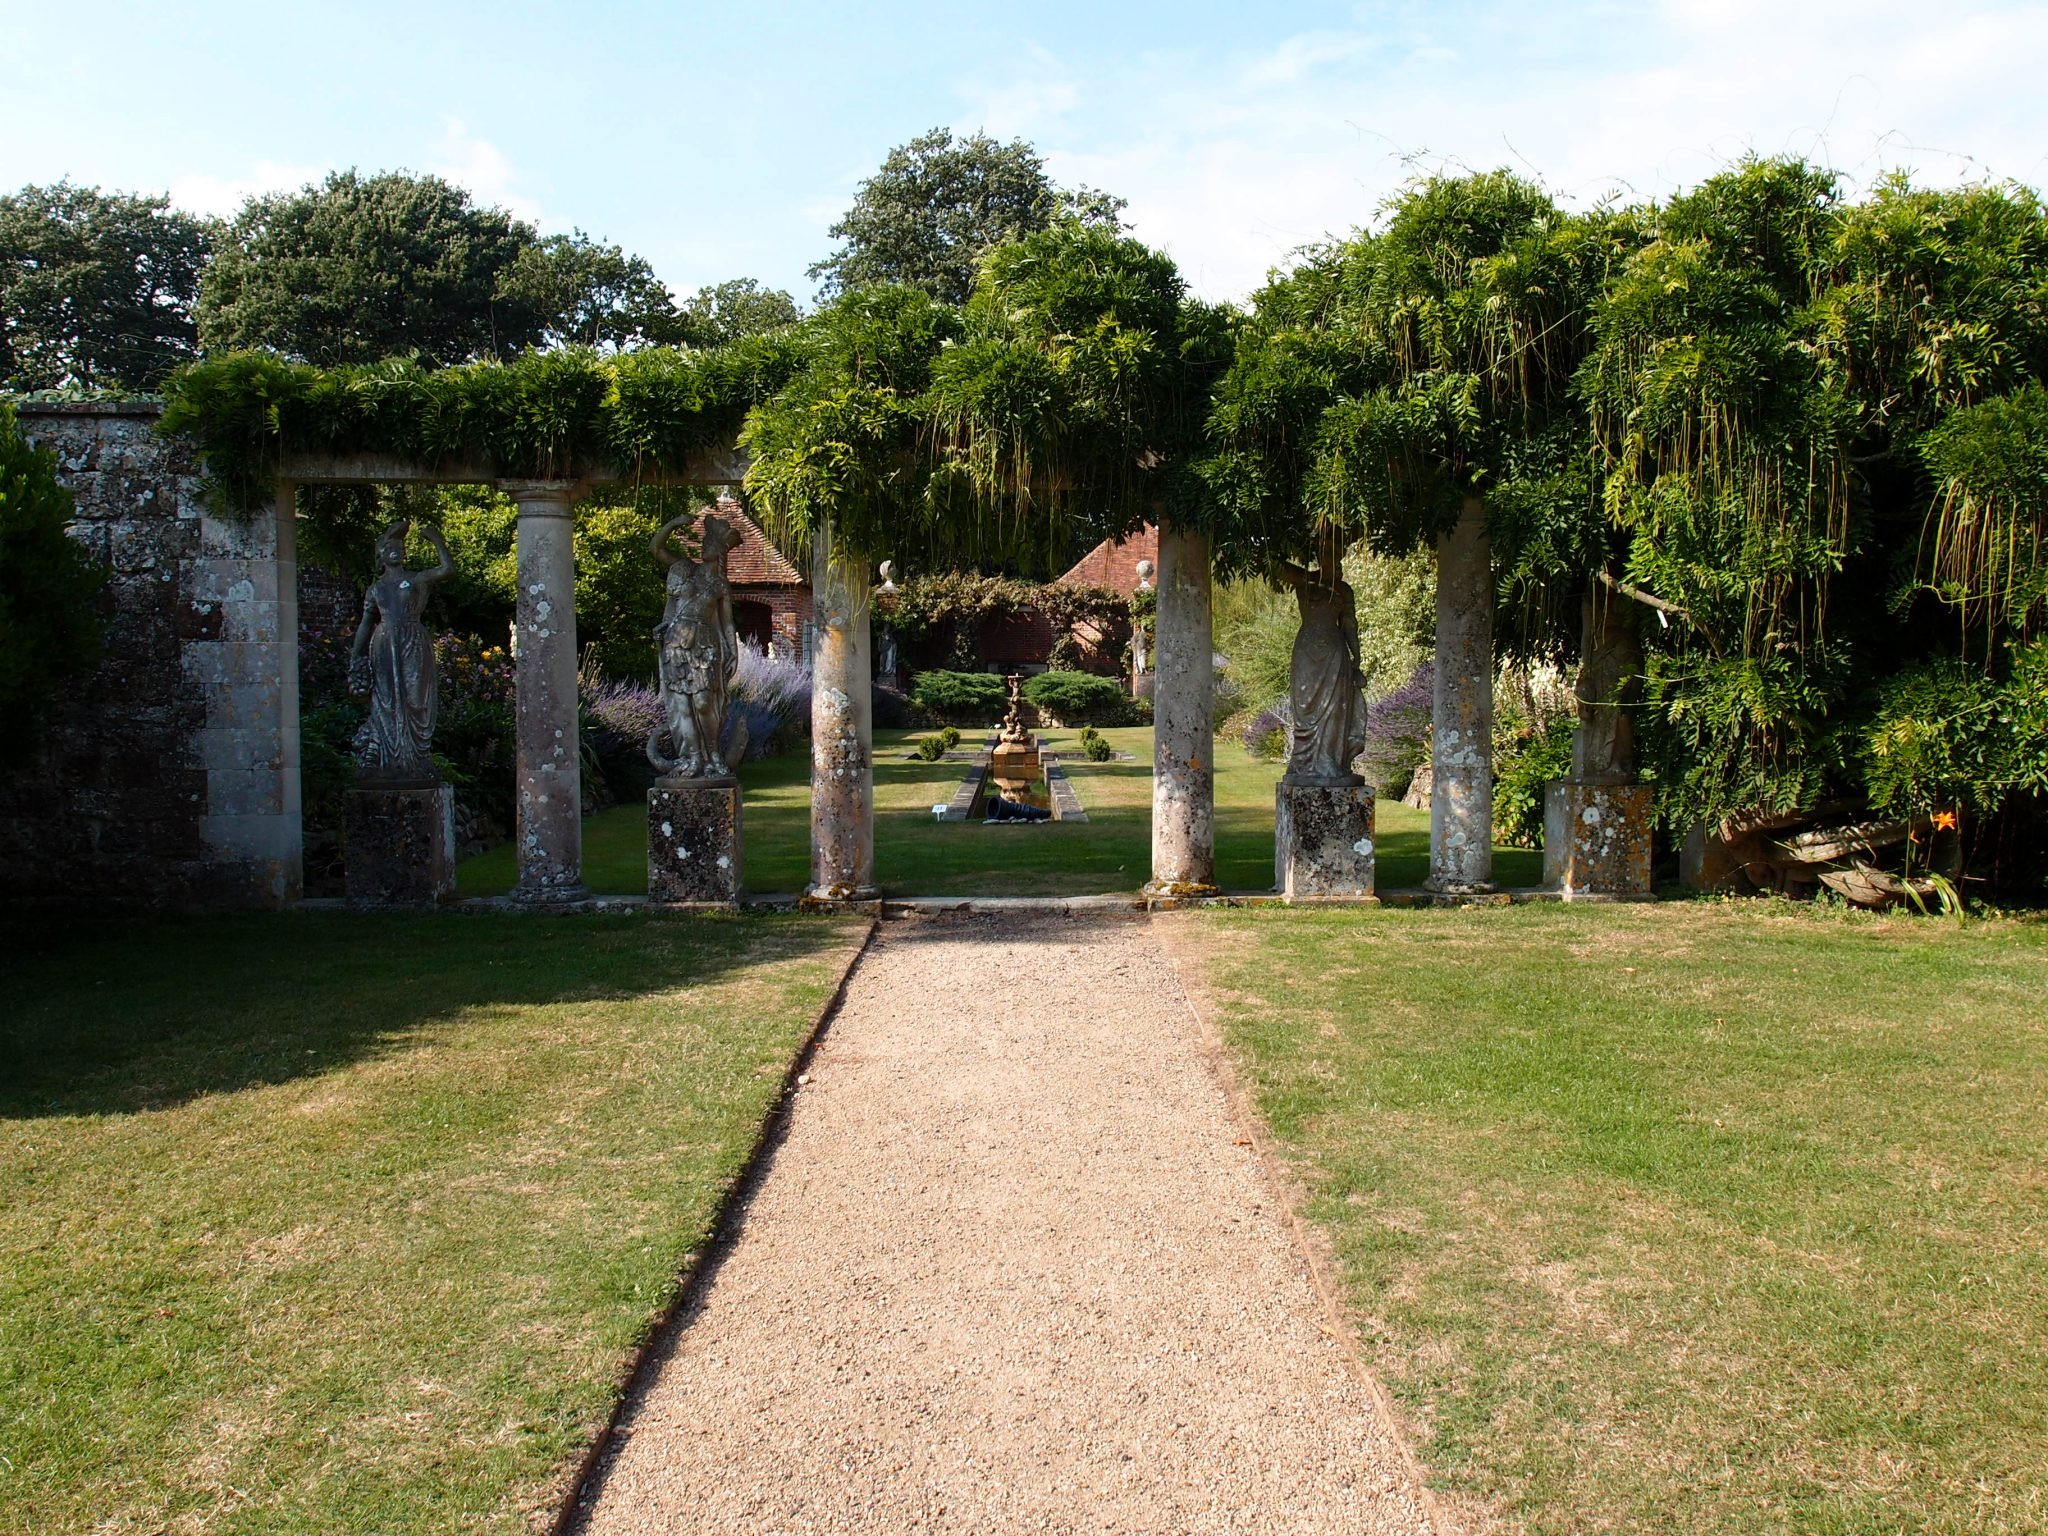 West of the Rose Garden, we found this Neoclassical Colonnade, which leads to the Italian Garden.